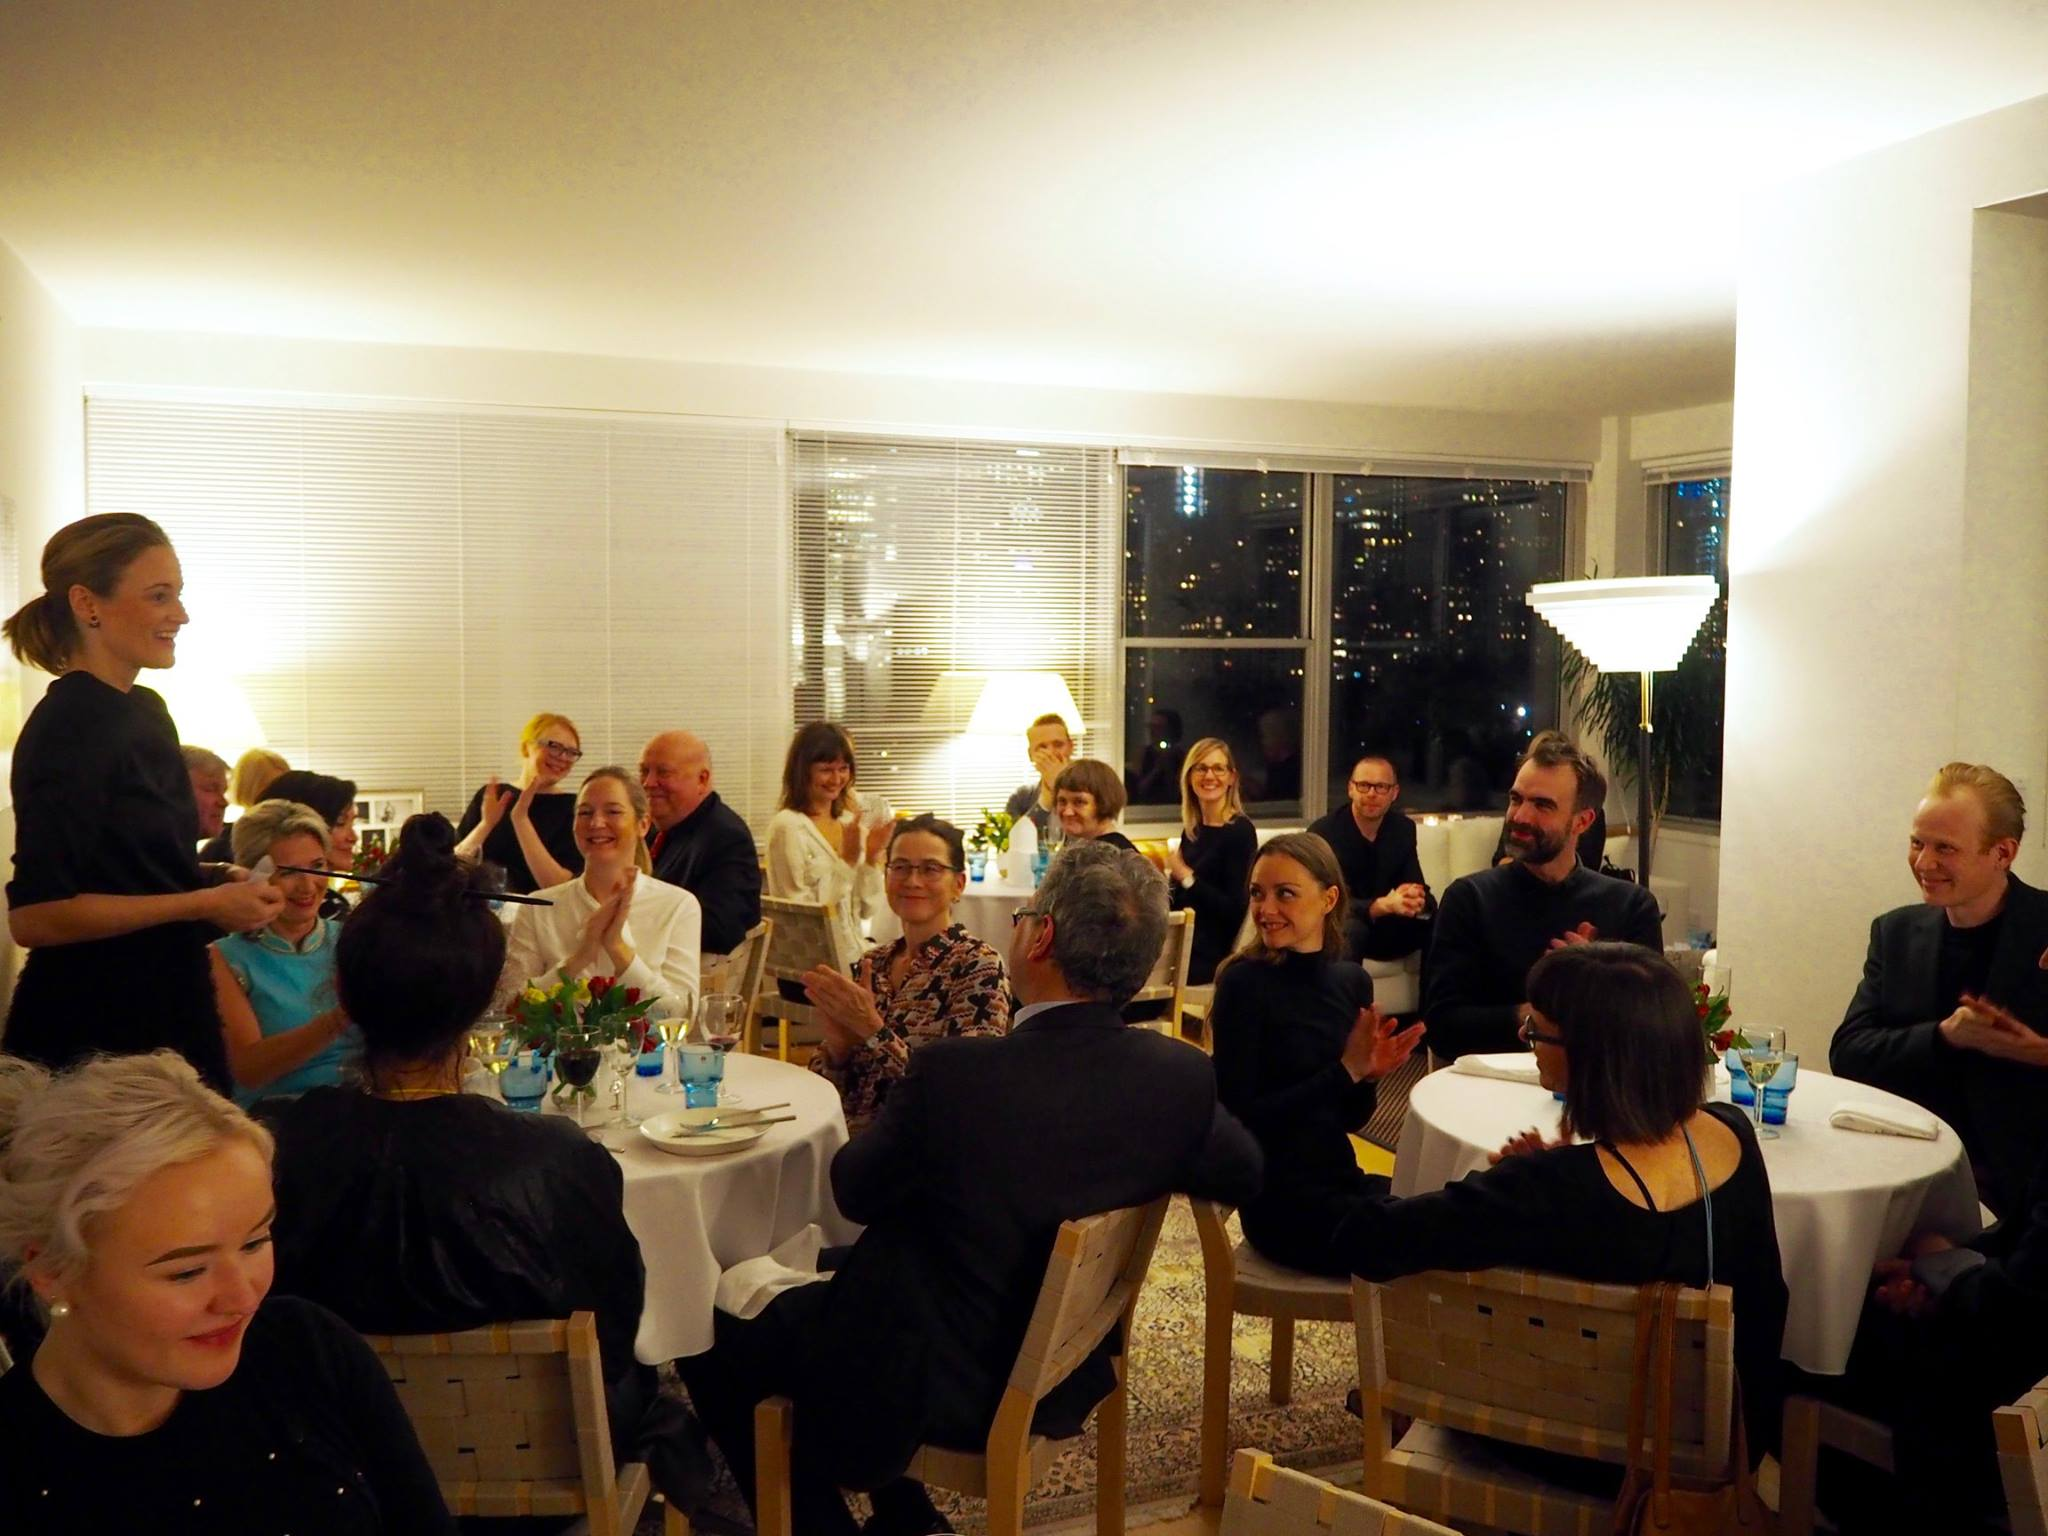 Happy guests at the dinner party at the Consulate General of Finland's residence on November 30, 2017. The intimate event brought together FCINY's board members, New York partners and colleagues, and Finnish designers and artists and designers who live in the city.